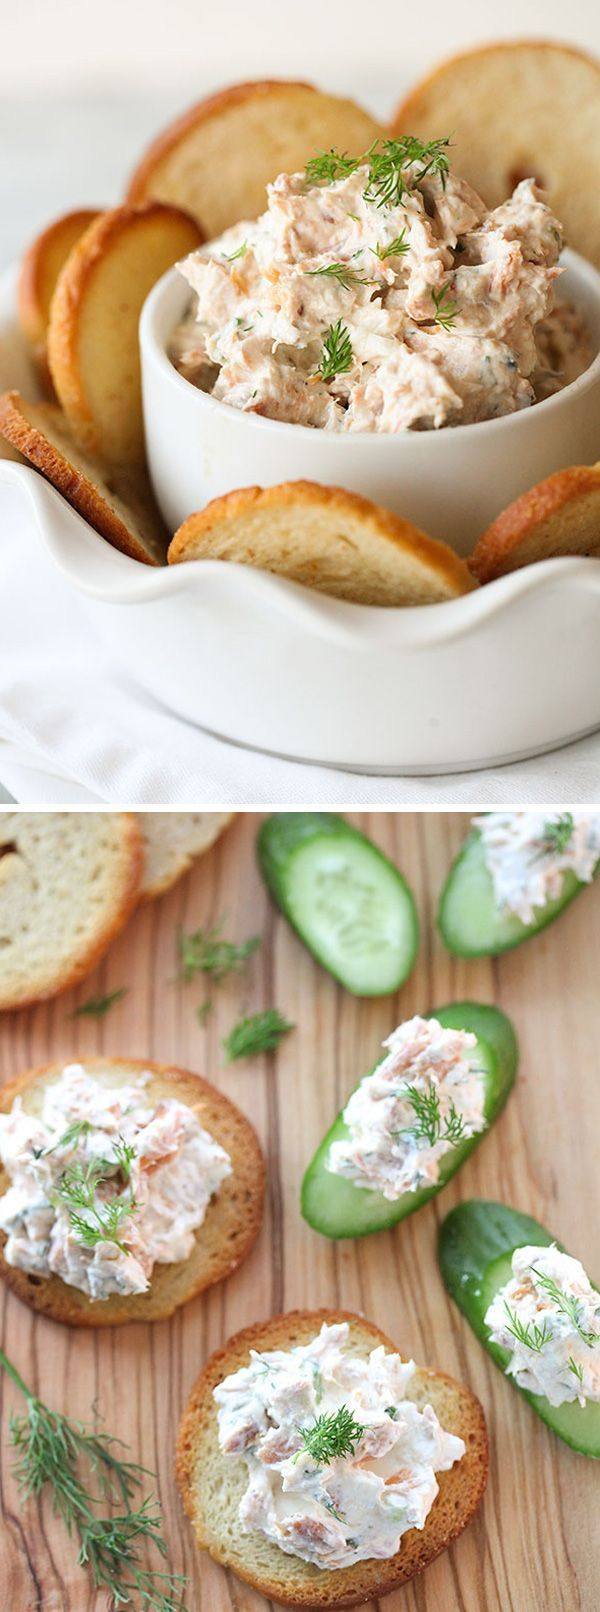 This spread is great on fresh veggies and toasted baguettes alike. I personally enjoy it on Sea Salt flavored bagel crisps, a perfect one bite party snack. #recipe on foodiecrush.com